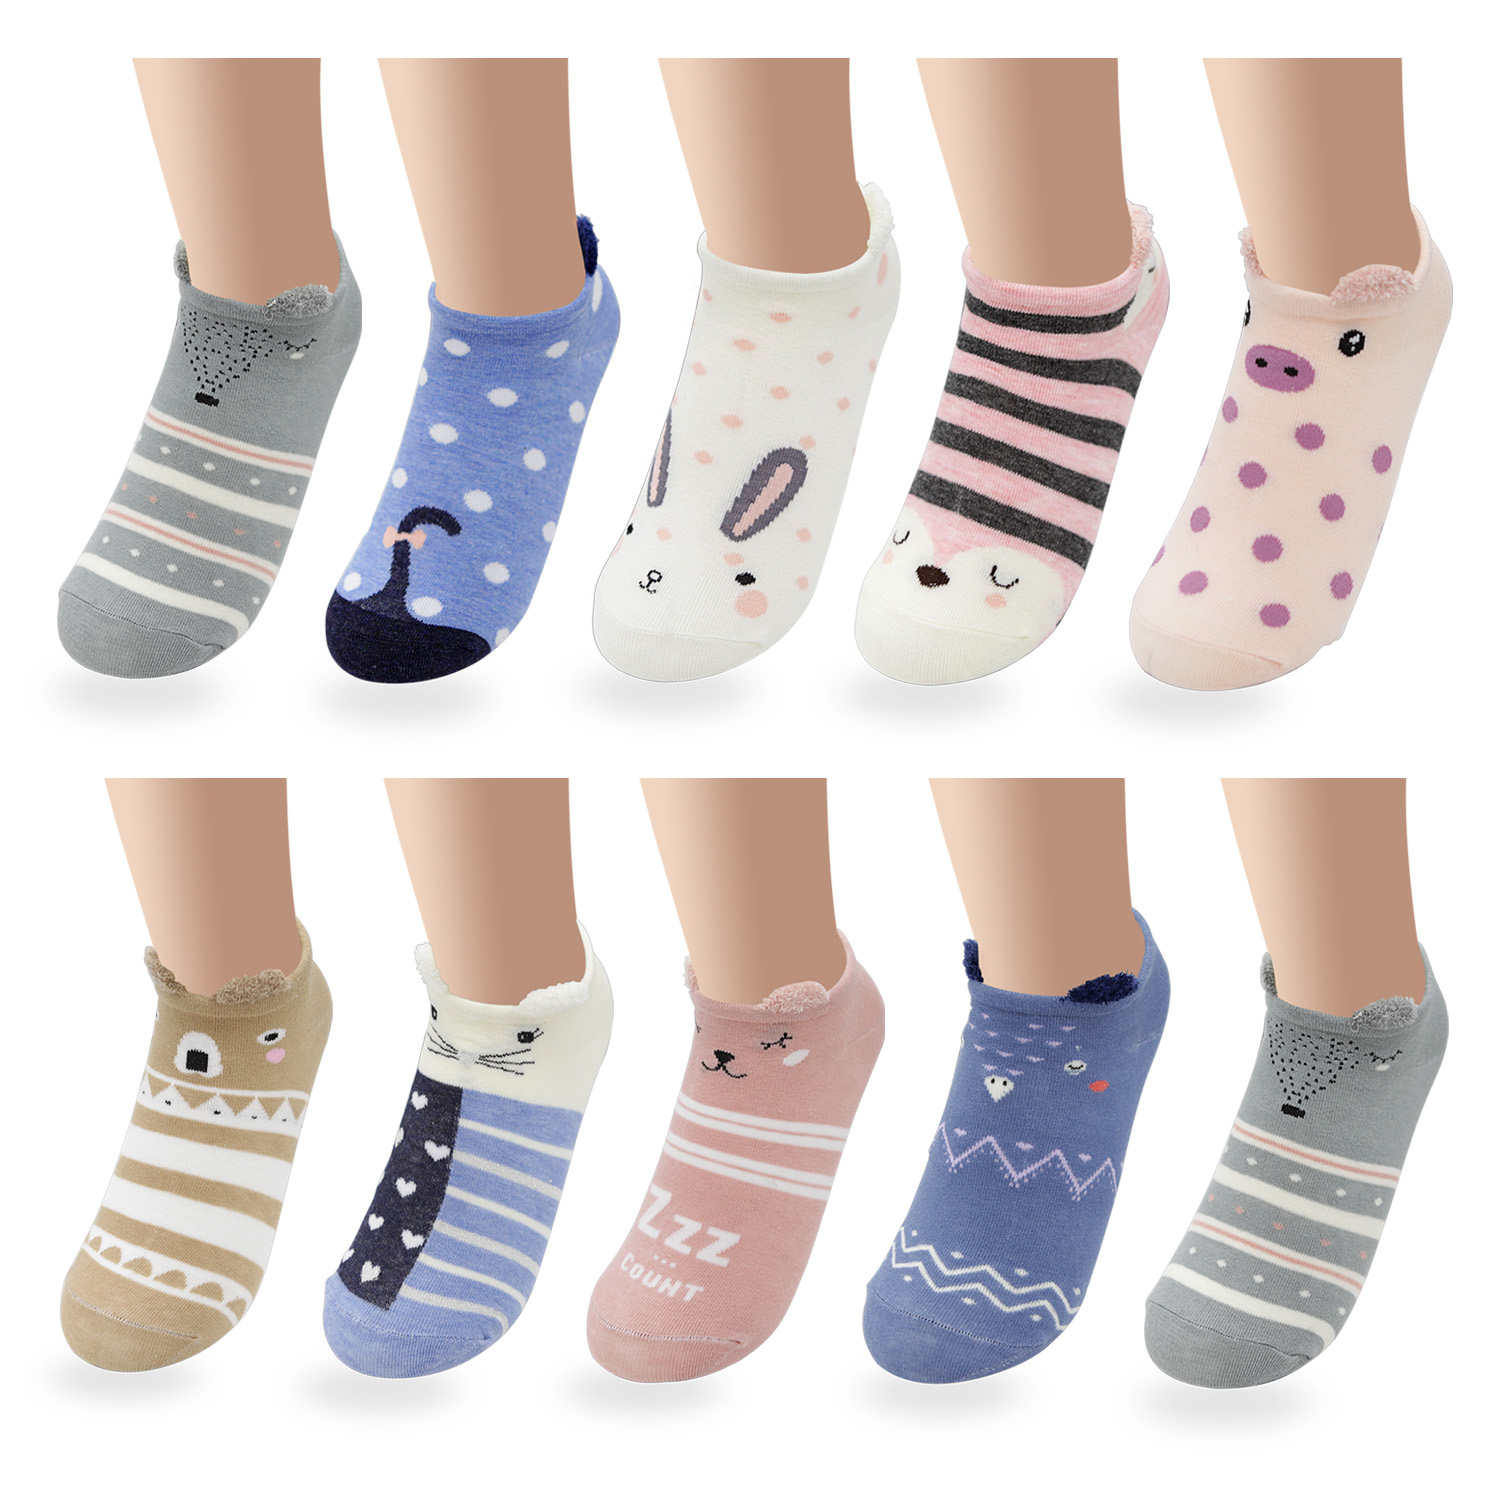 Cute Animal Cotton Socks Female Kawaii Summer Short Sock Slippers Women Casual Soft Funny Boat Socks